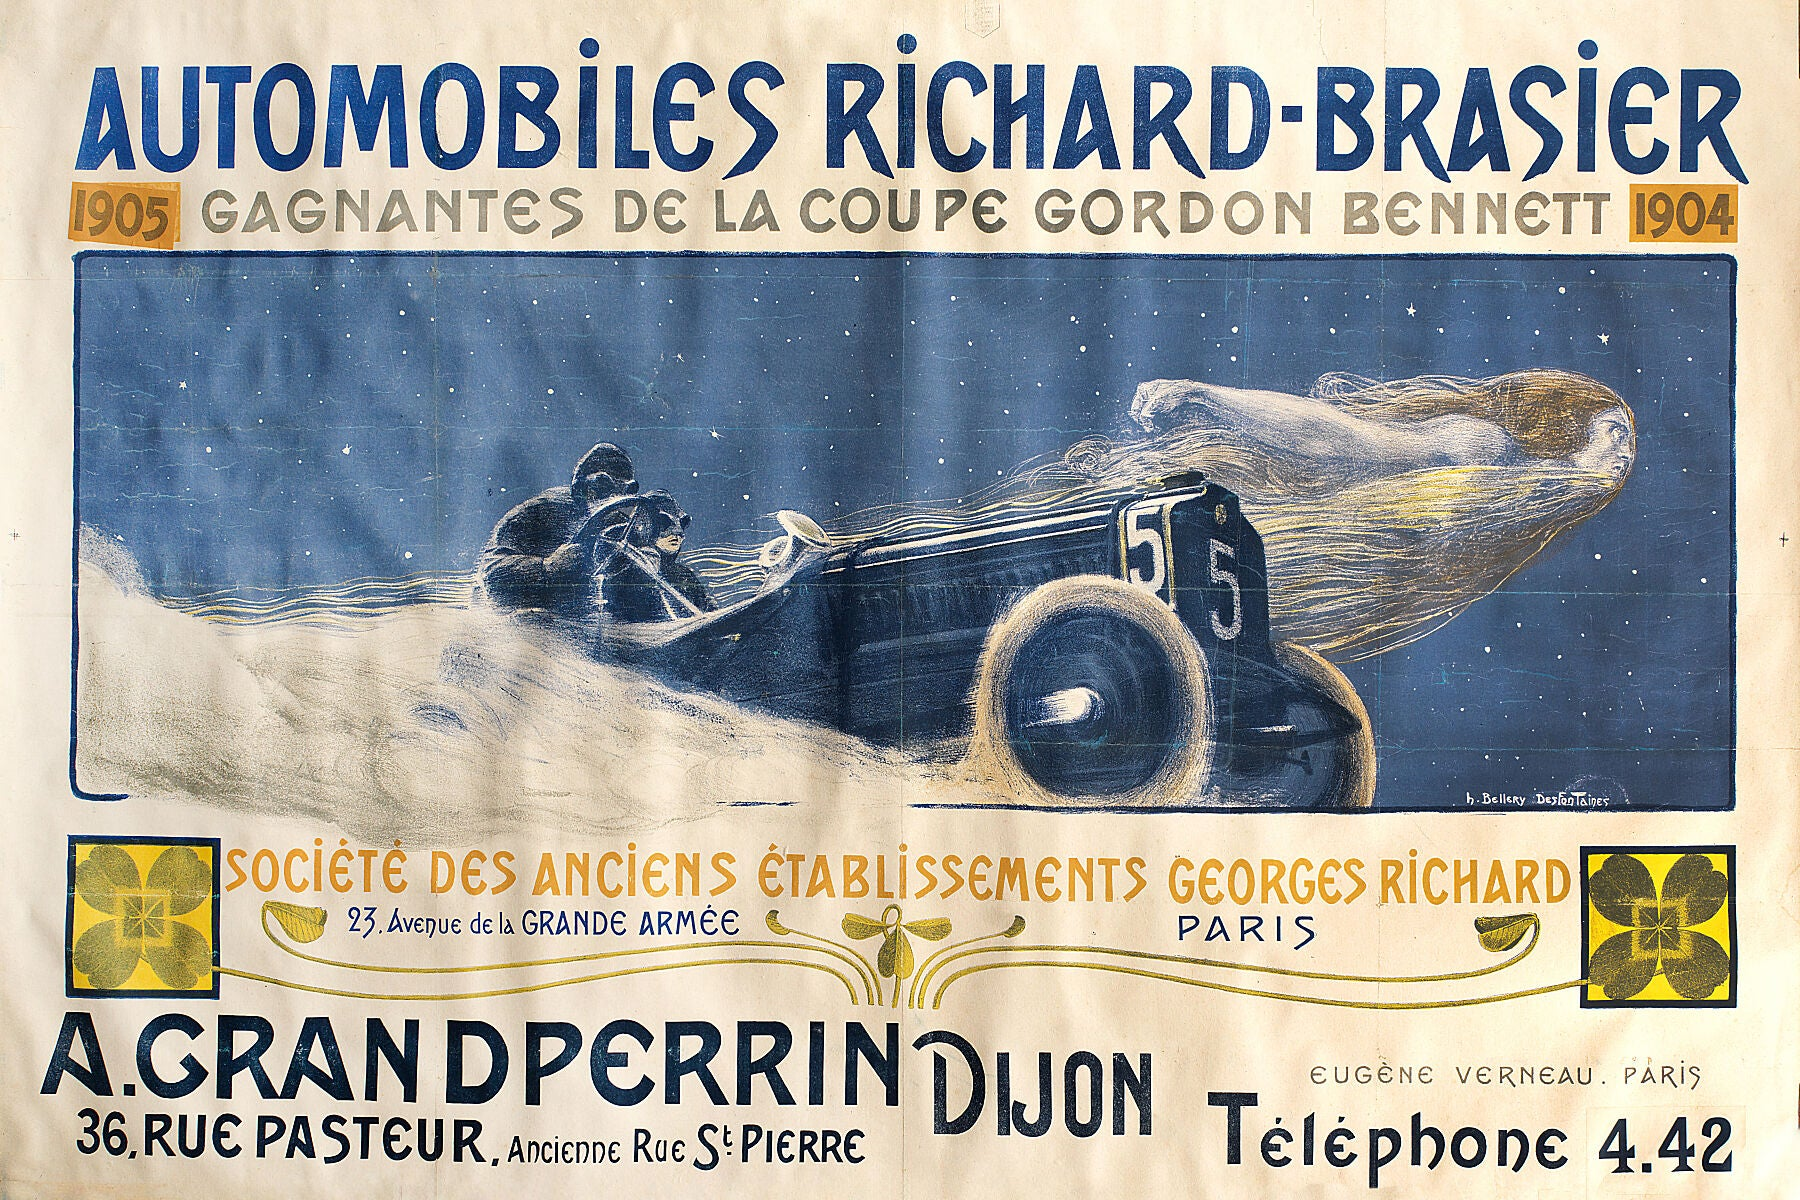 Automobiles Richard Brasier poster designed by Henri Bellery-Desfontaines - 1905